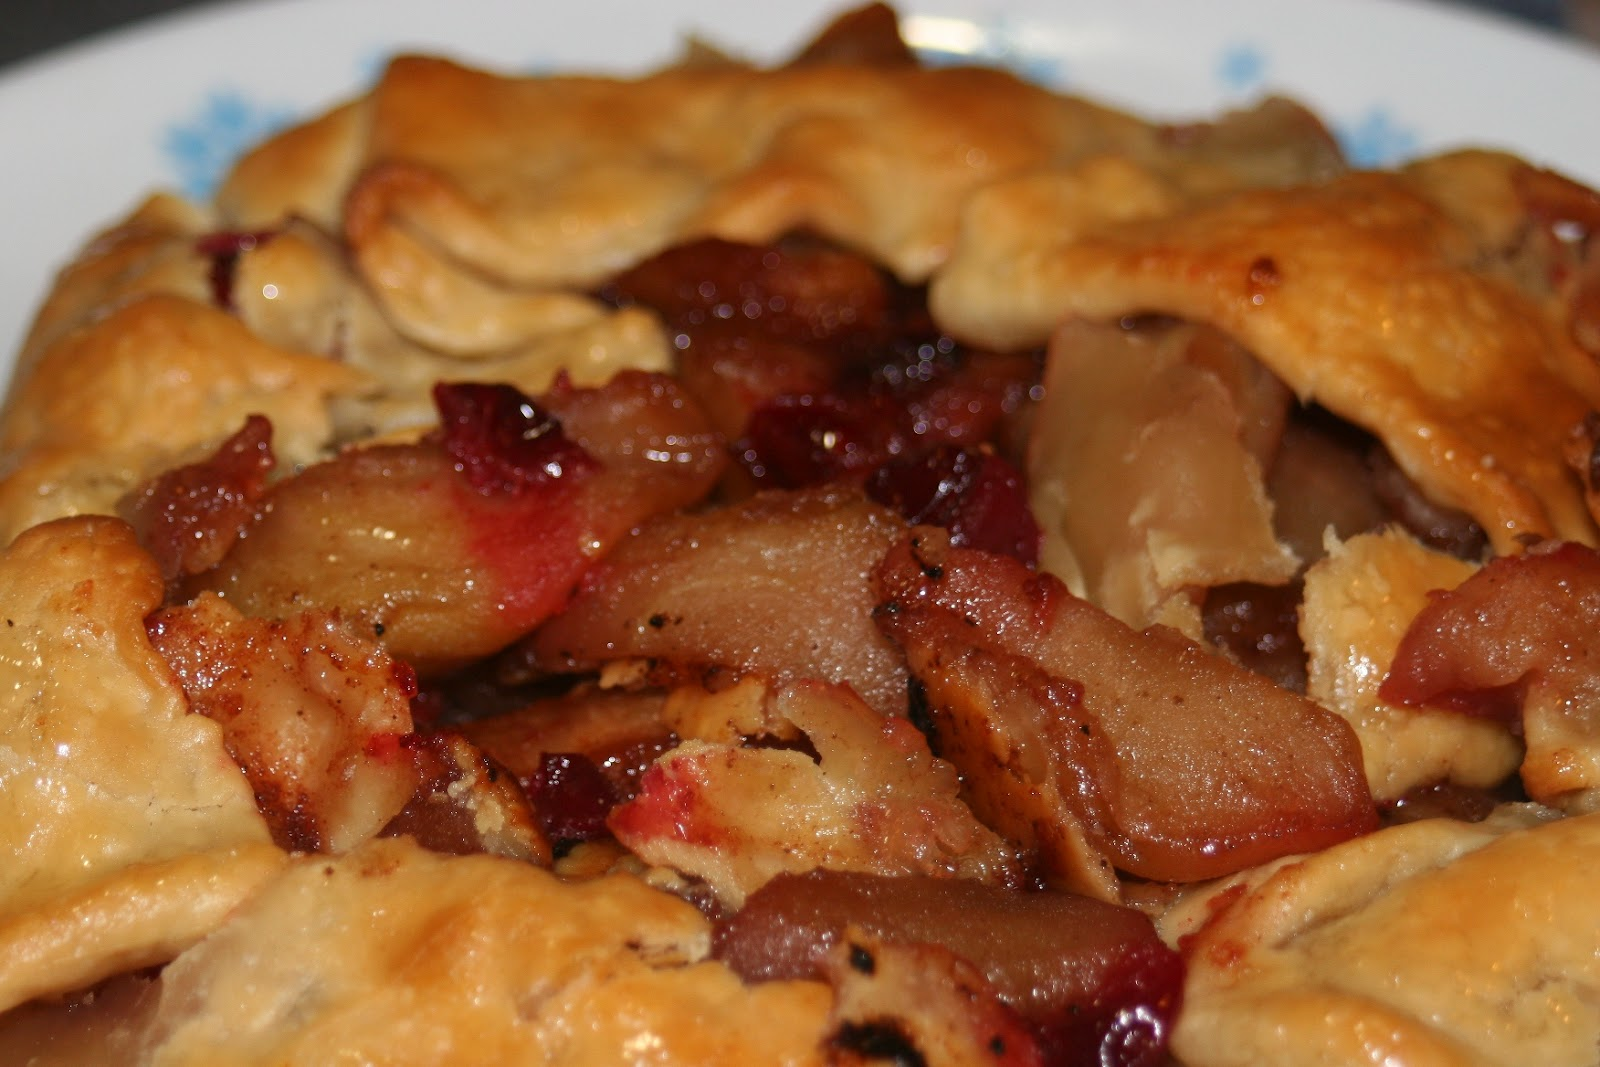 As a form of tart that hails from Italy, the crostata cane be ...